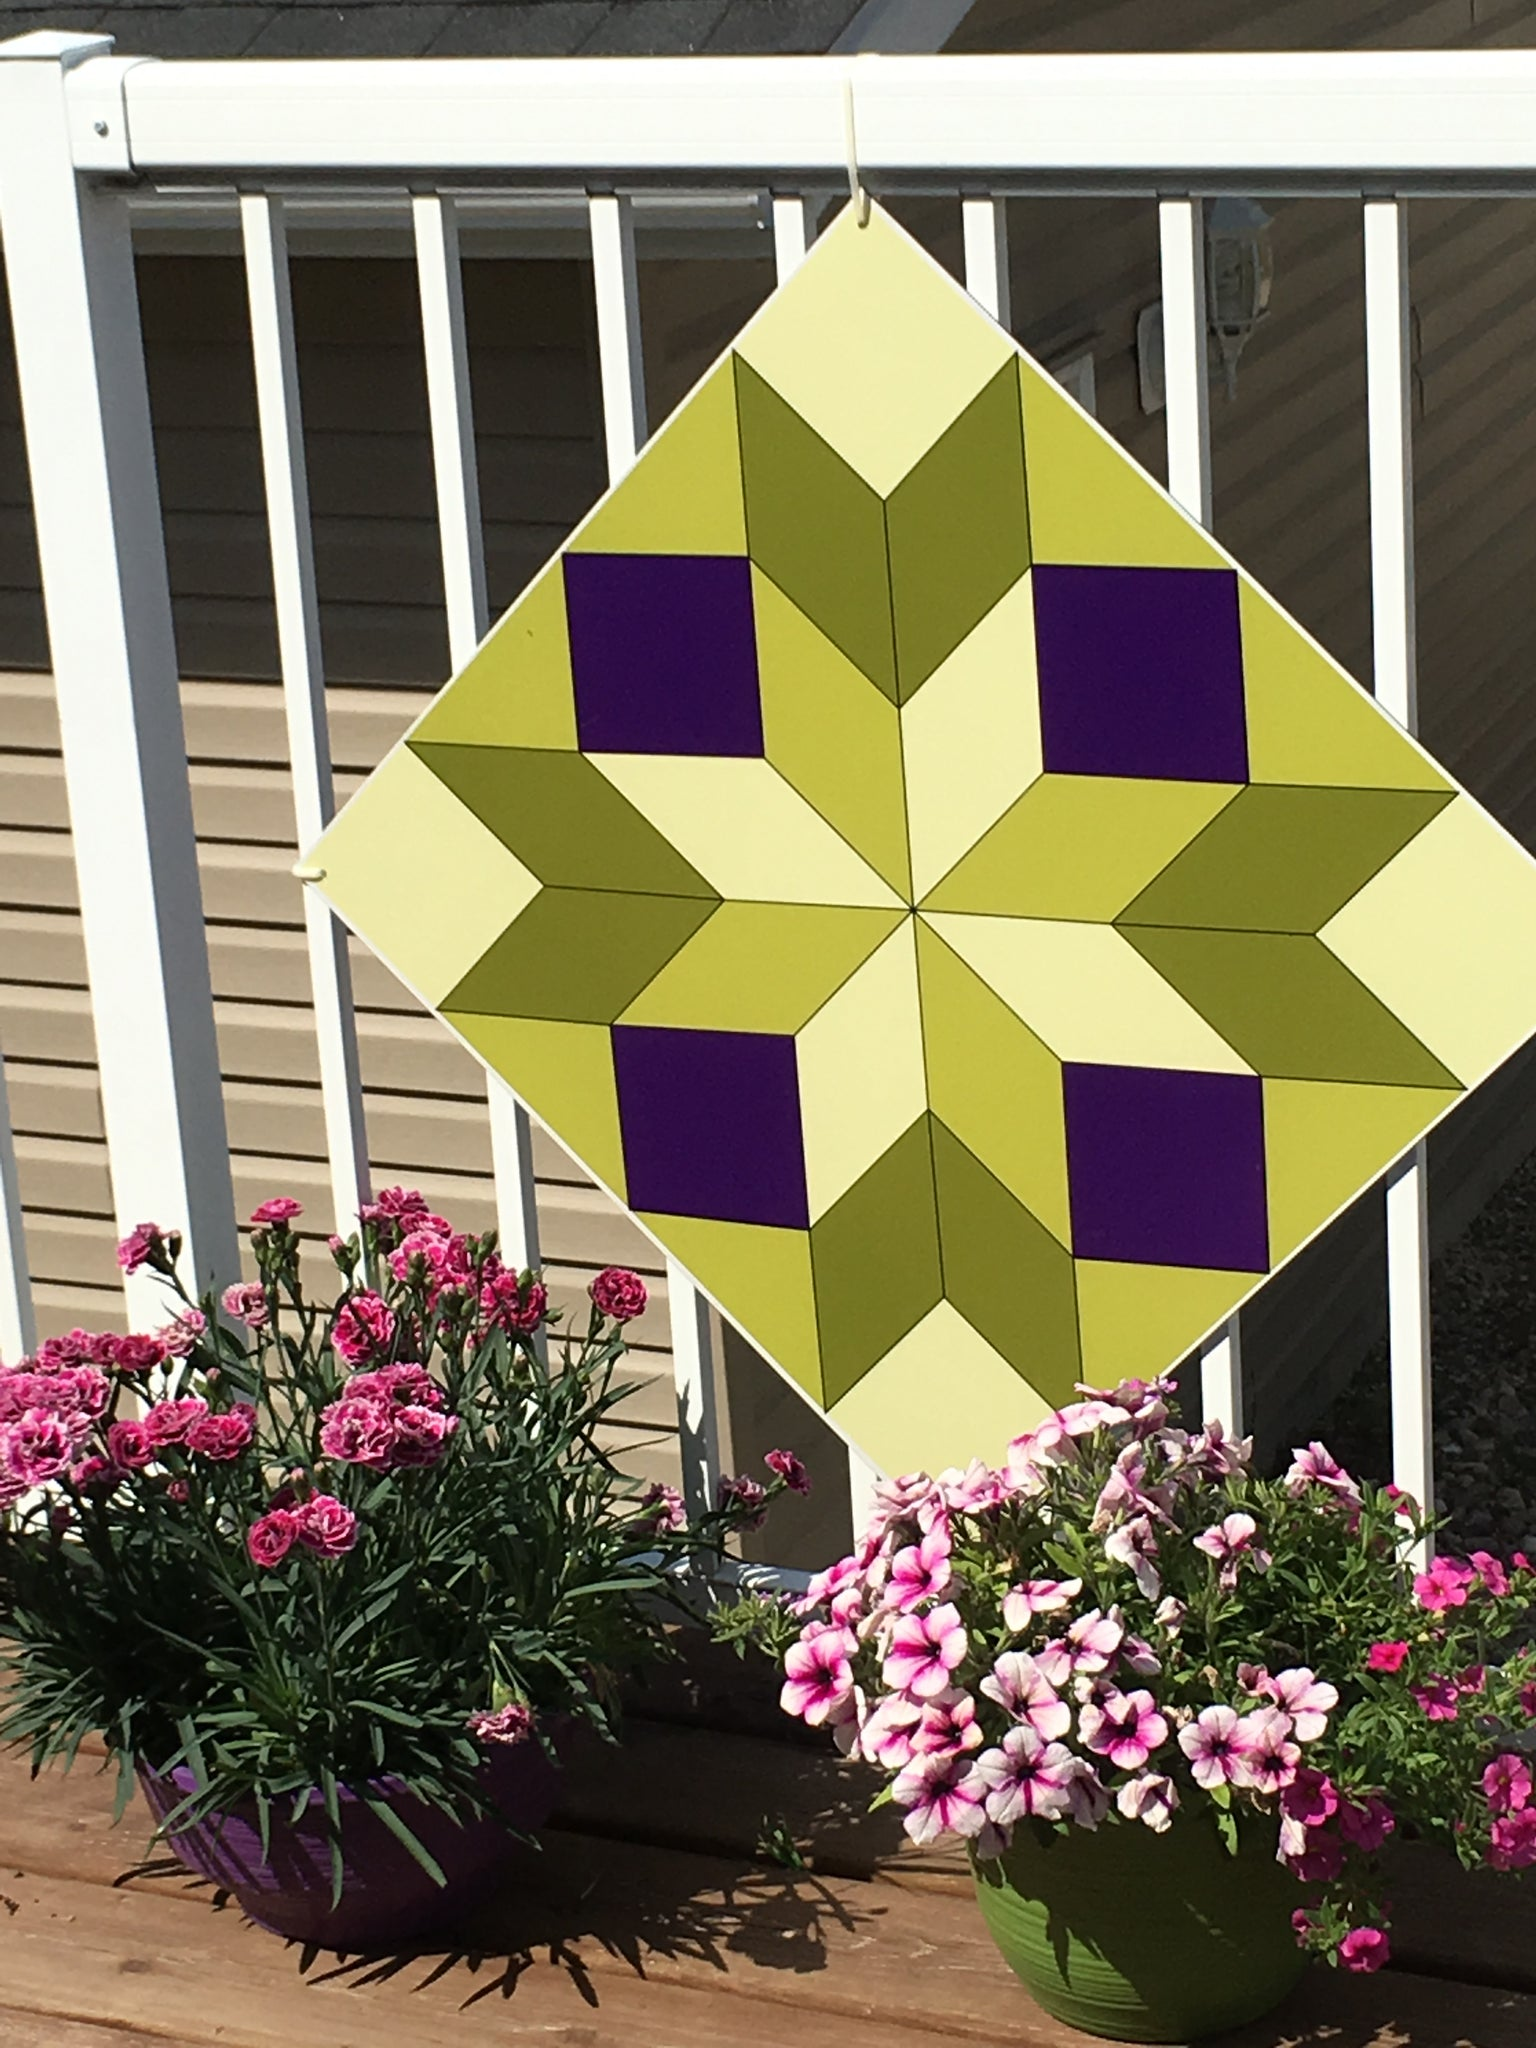 Peace - Quilt Designs in the Yard